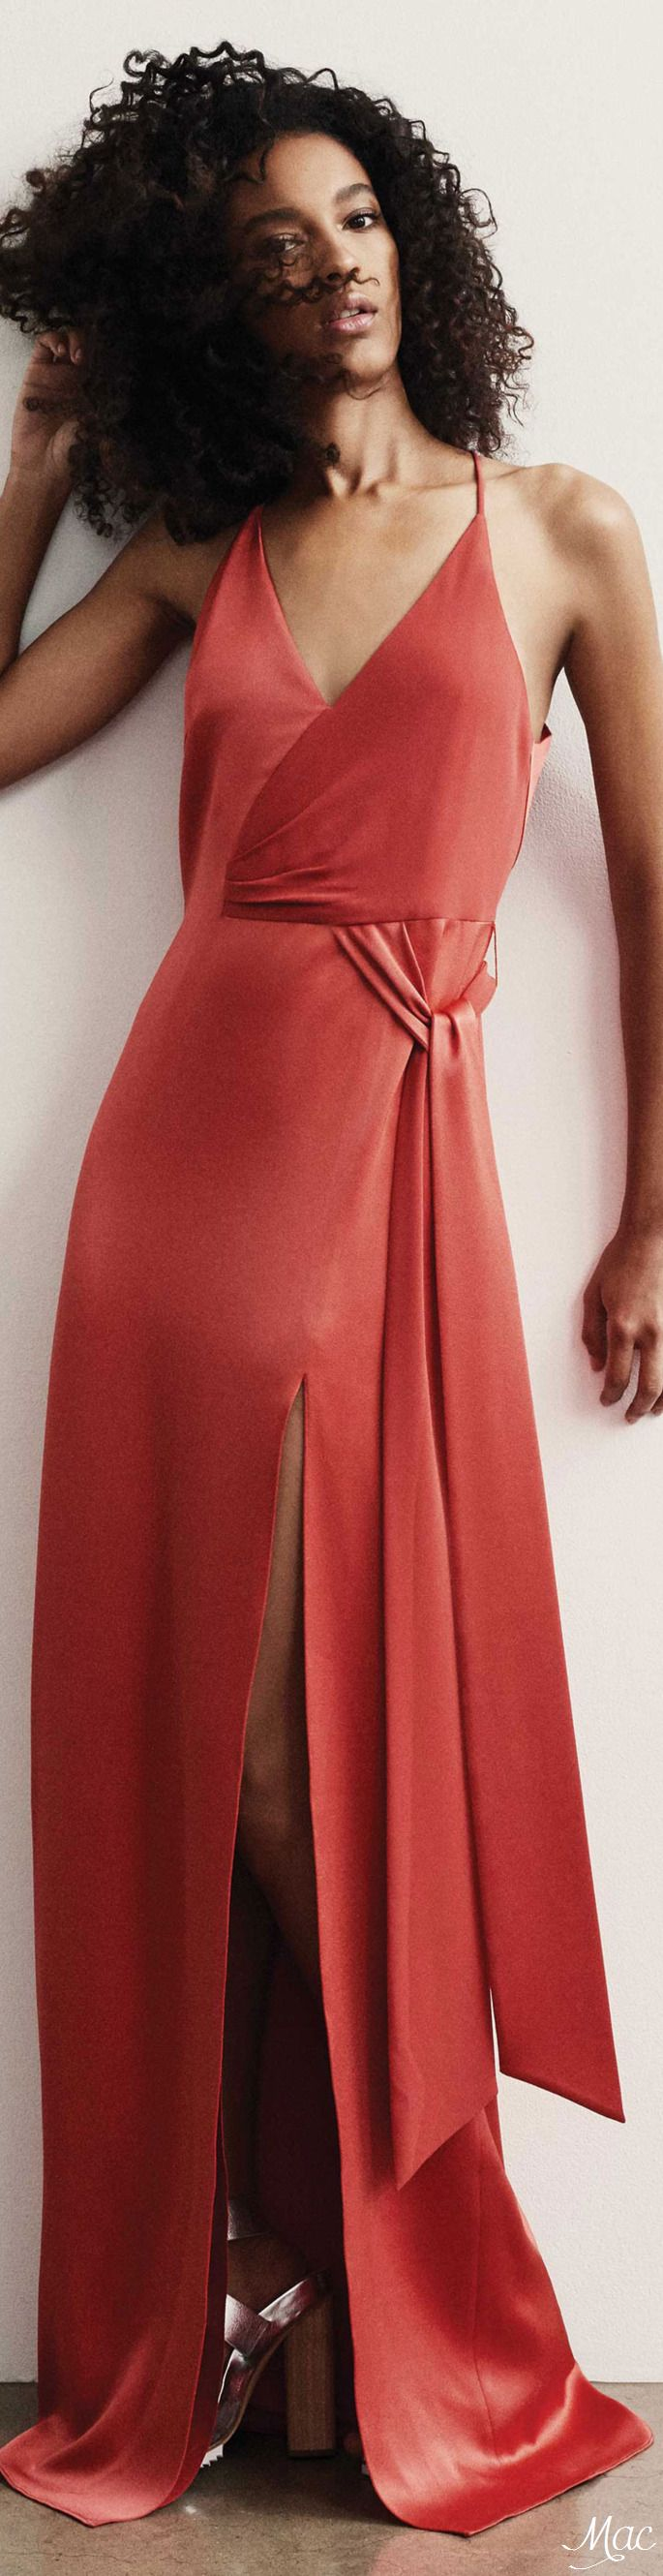 Spring 2017 Ready-to-Wear Halston Heritage